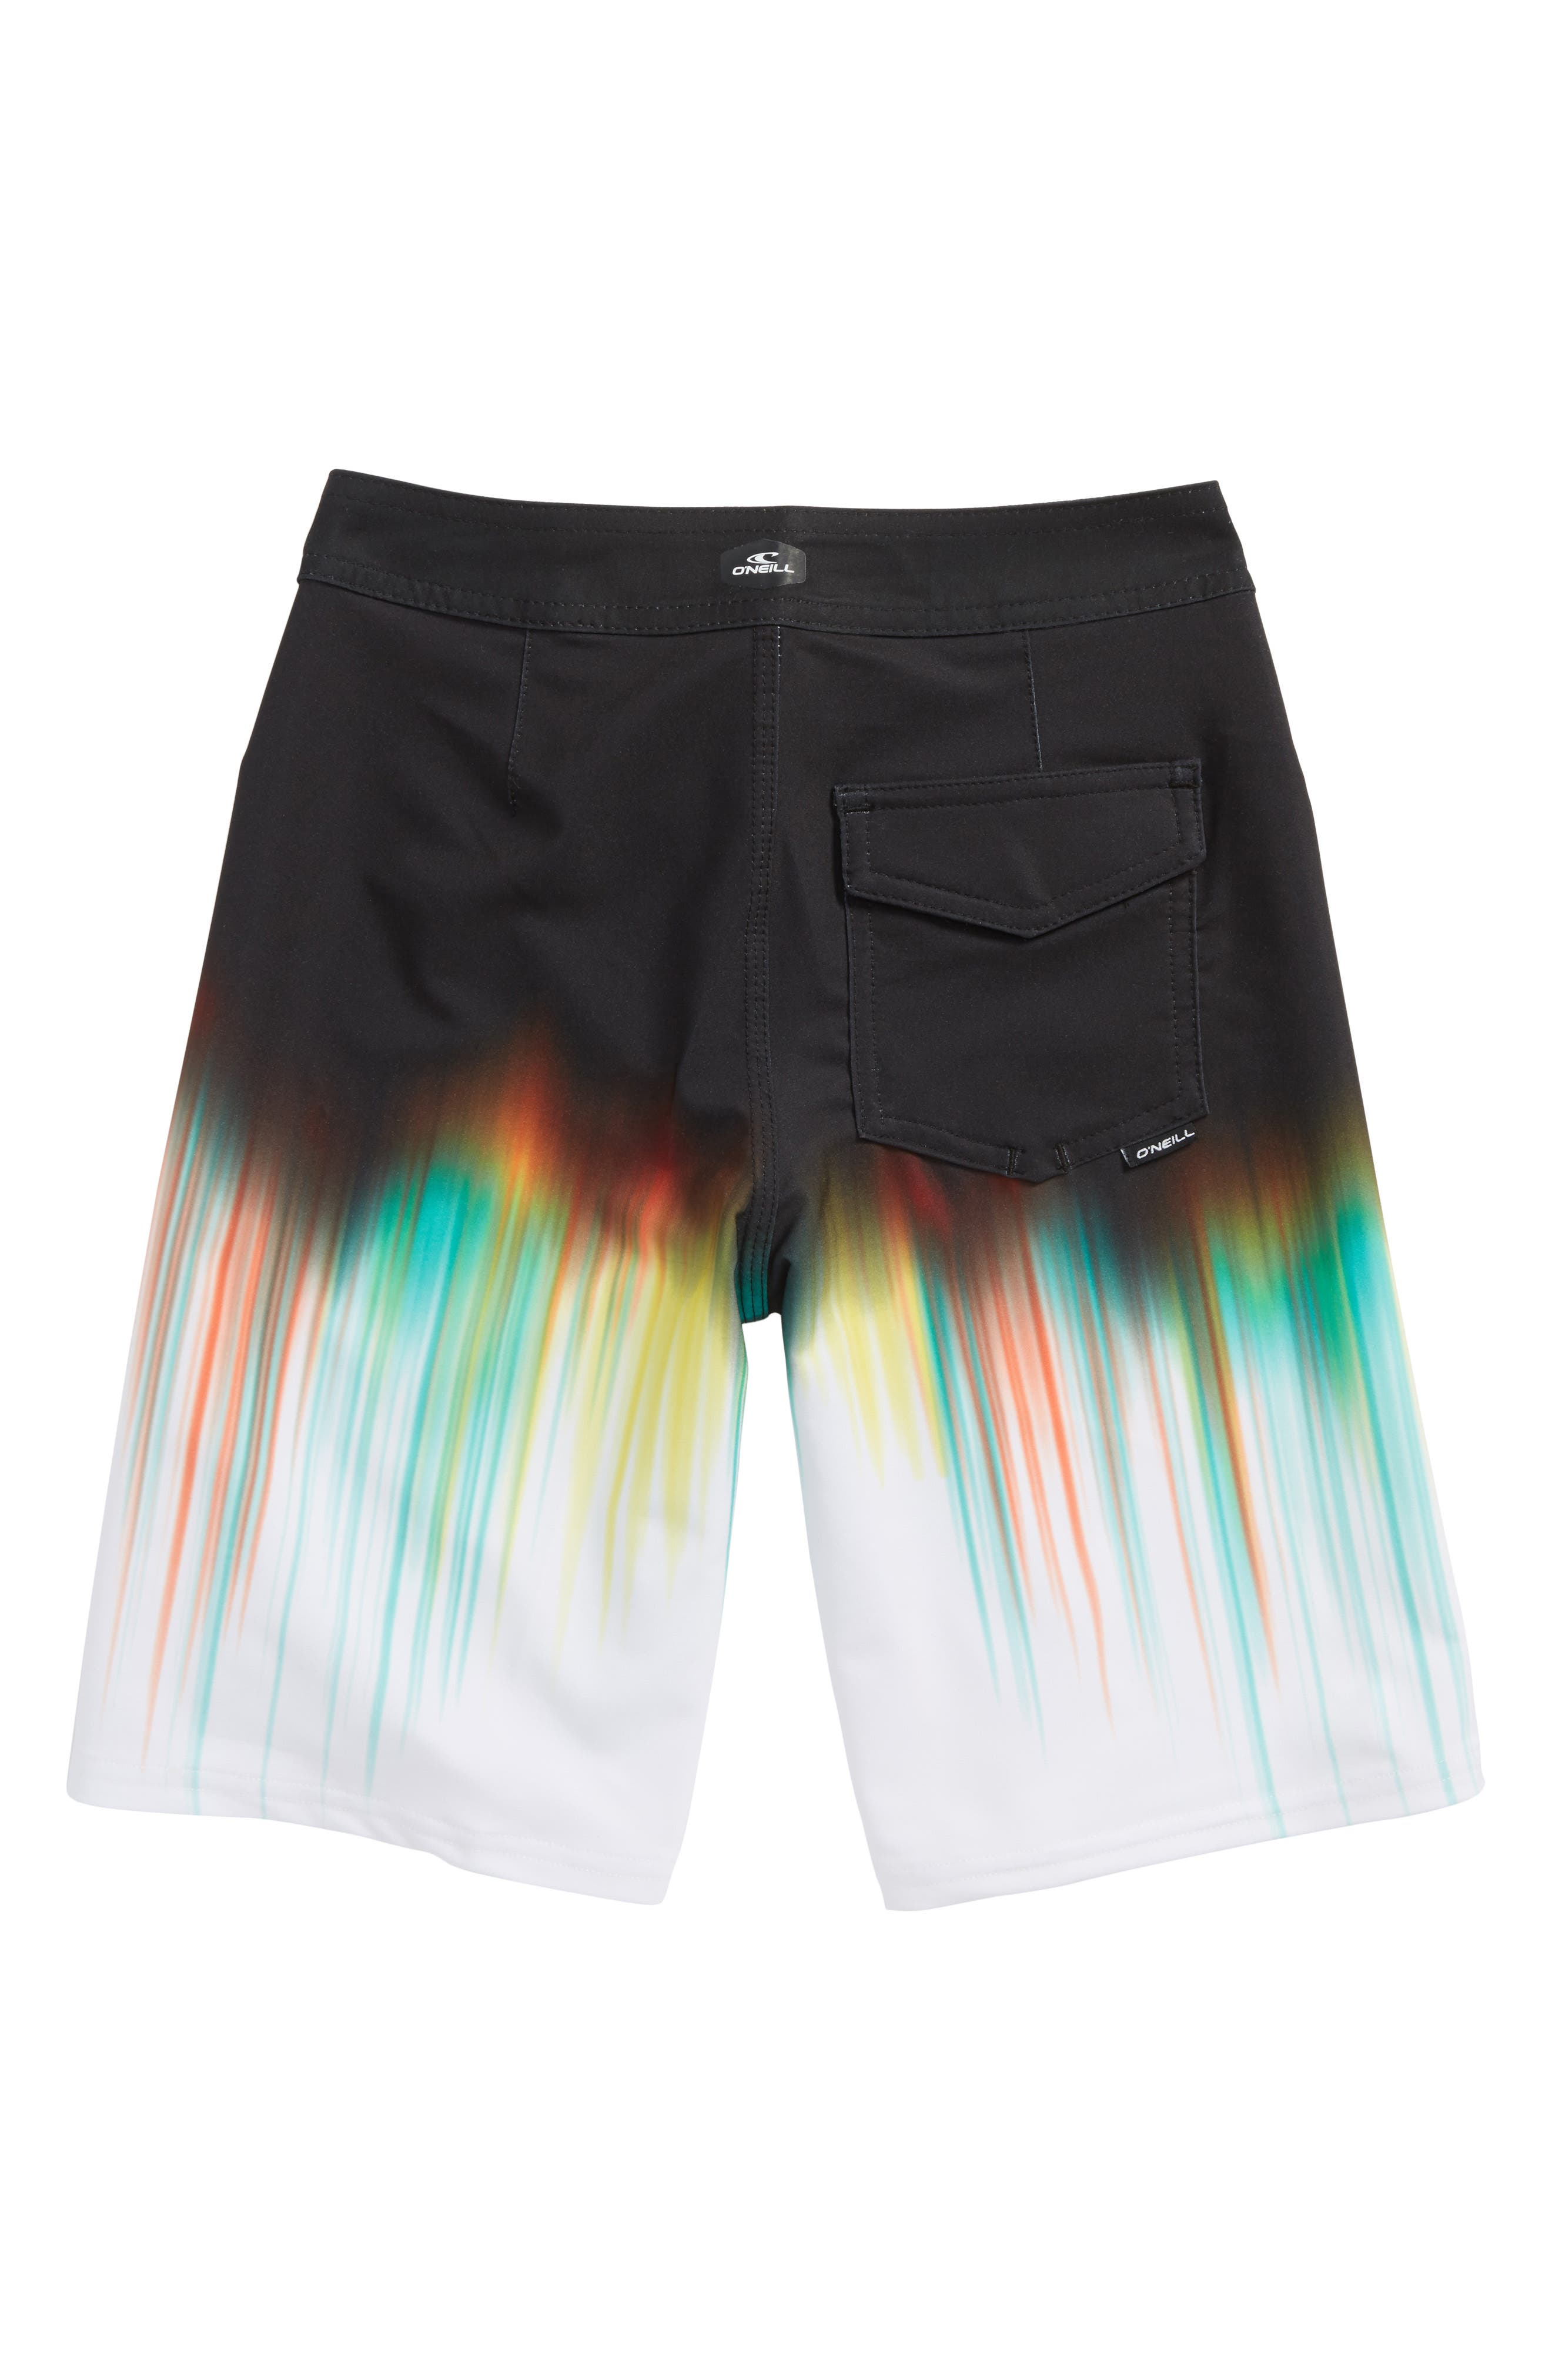 Hyperfreak Drippin Board Shorts,                             Alternate thumbnail 2, color,                             Black